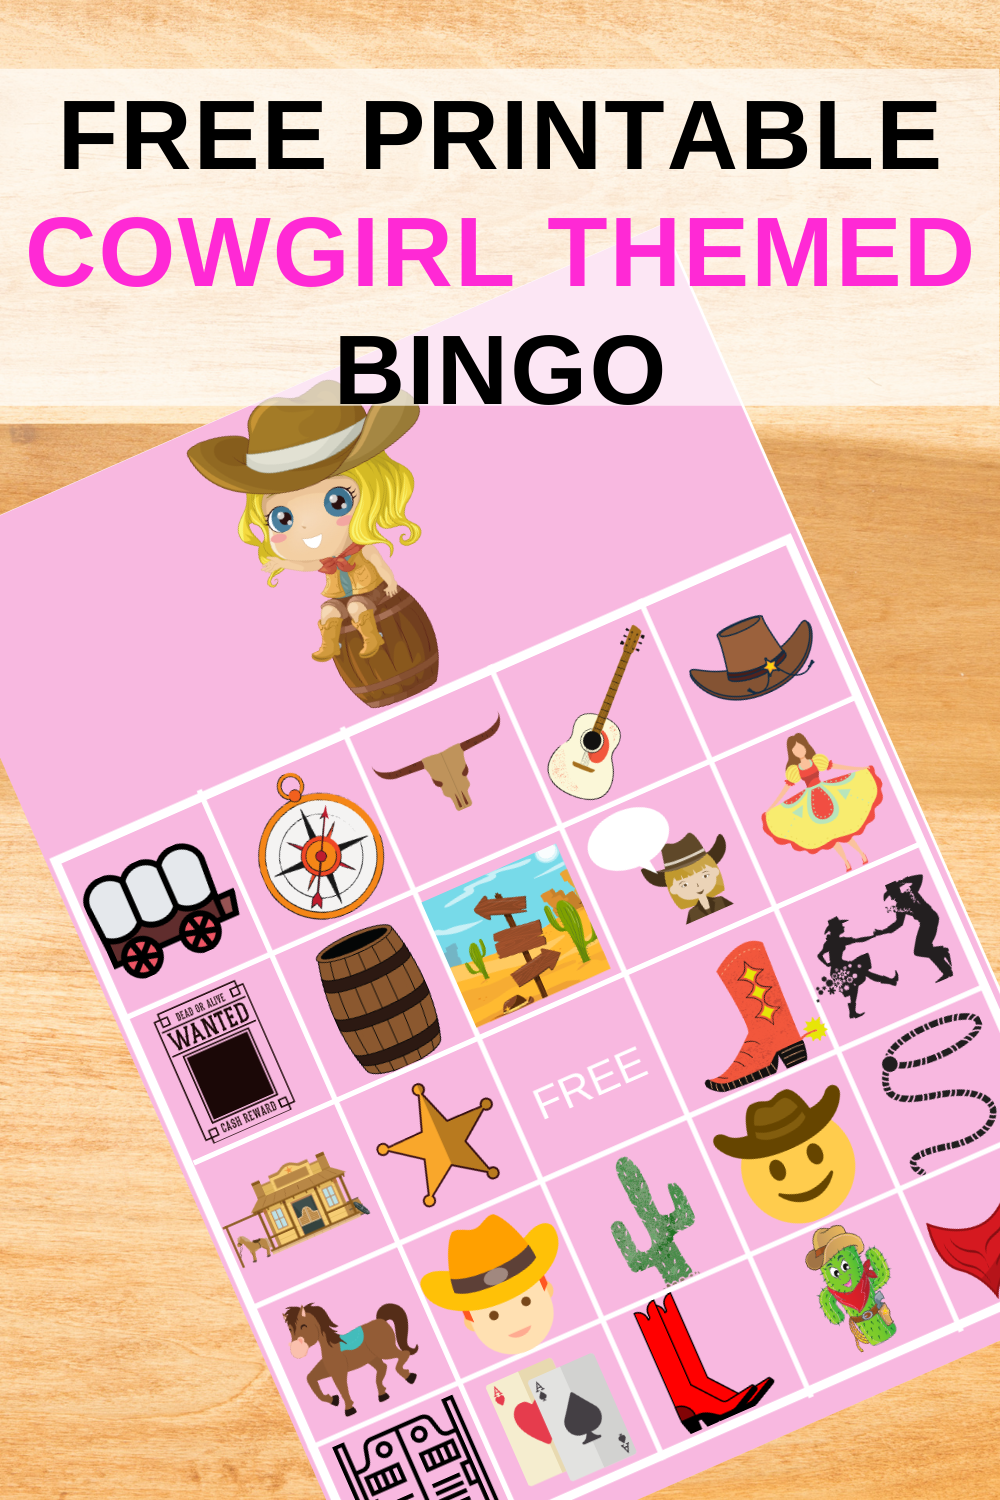 Cowgirl themed birthday party games for toddlers